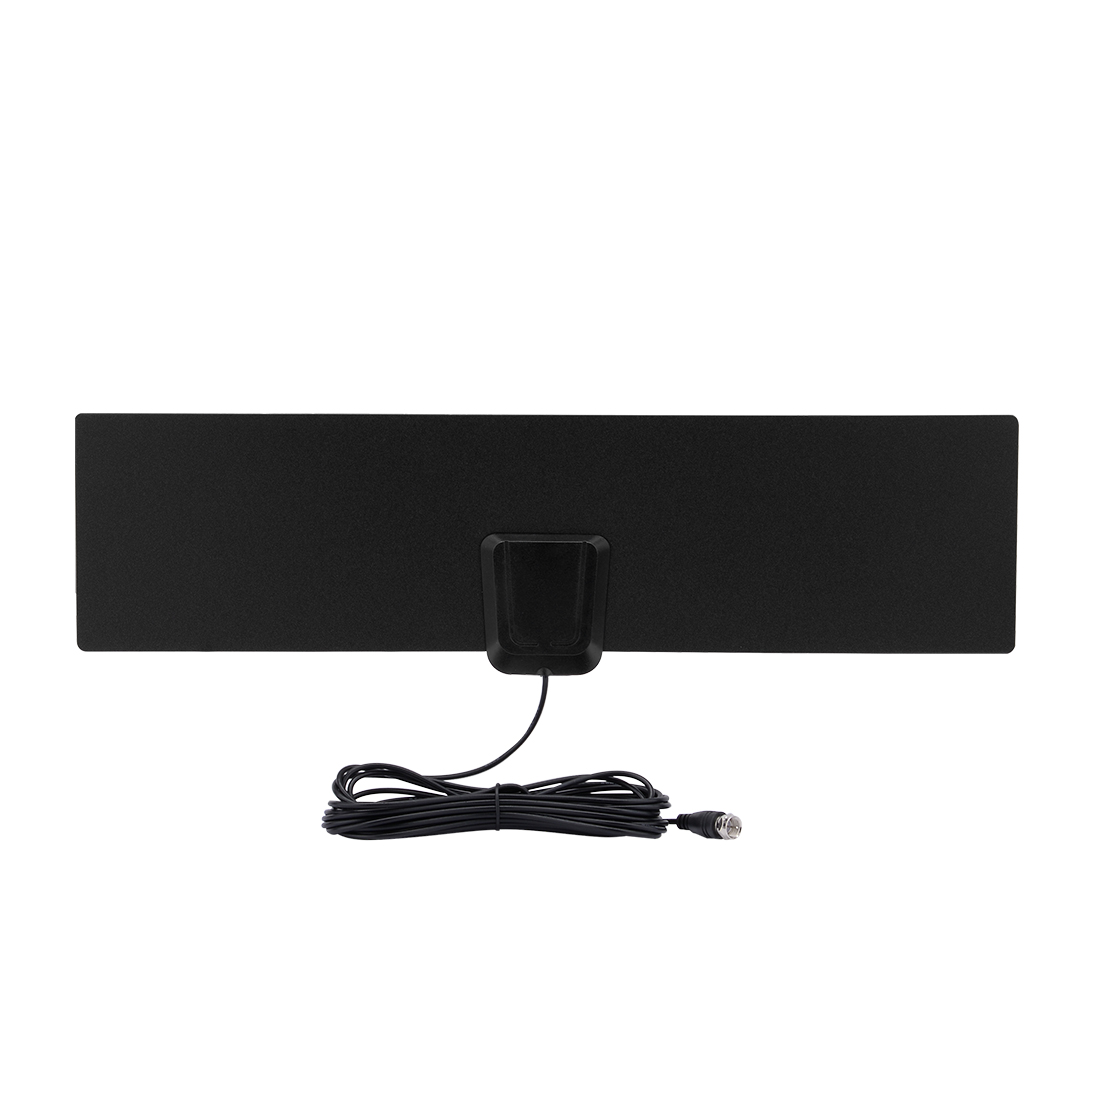 Amplified HDTV Antenna Light Indoor Digital TV Antenna 50 Mile Range with Power Supply Amplifier for HDTV